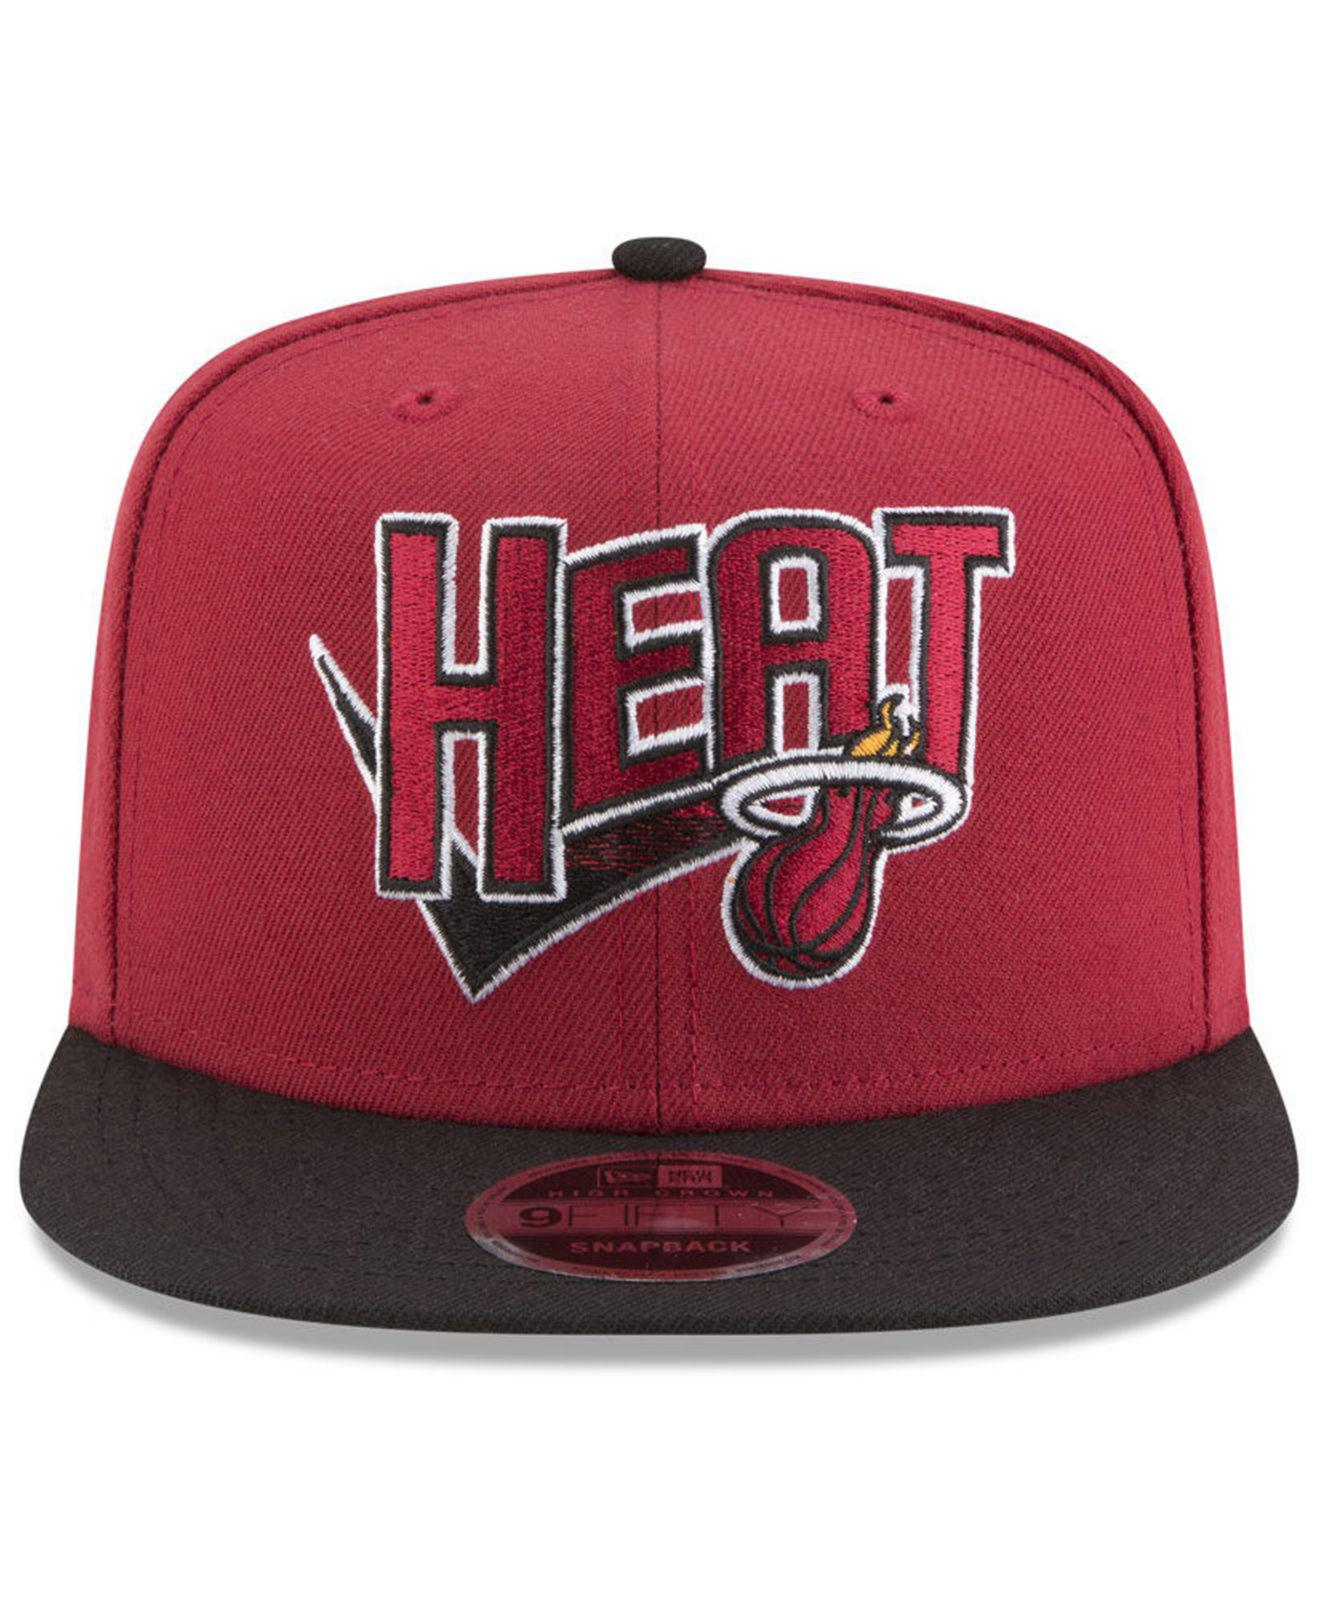 best sneakers 90457 44dc0 ... new arrivals lyst ktz miami heat retro tail 9fifty snapback cap in red  for men 8657c